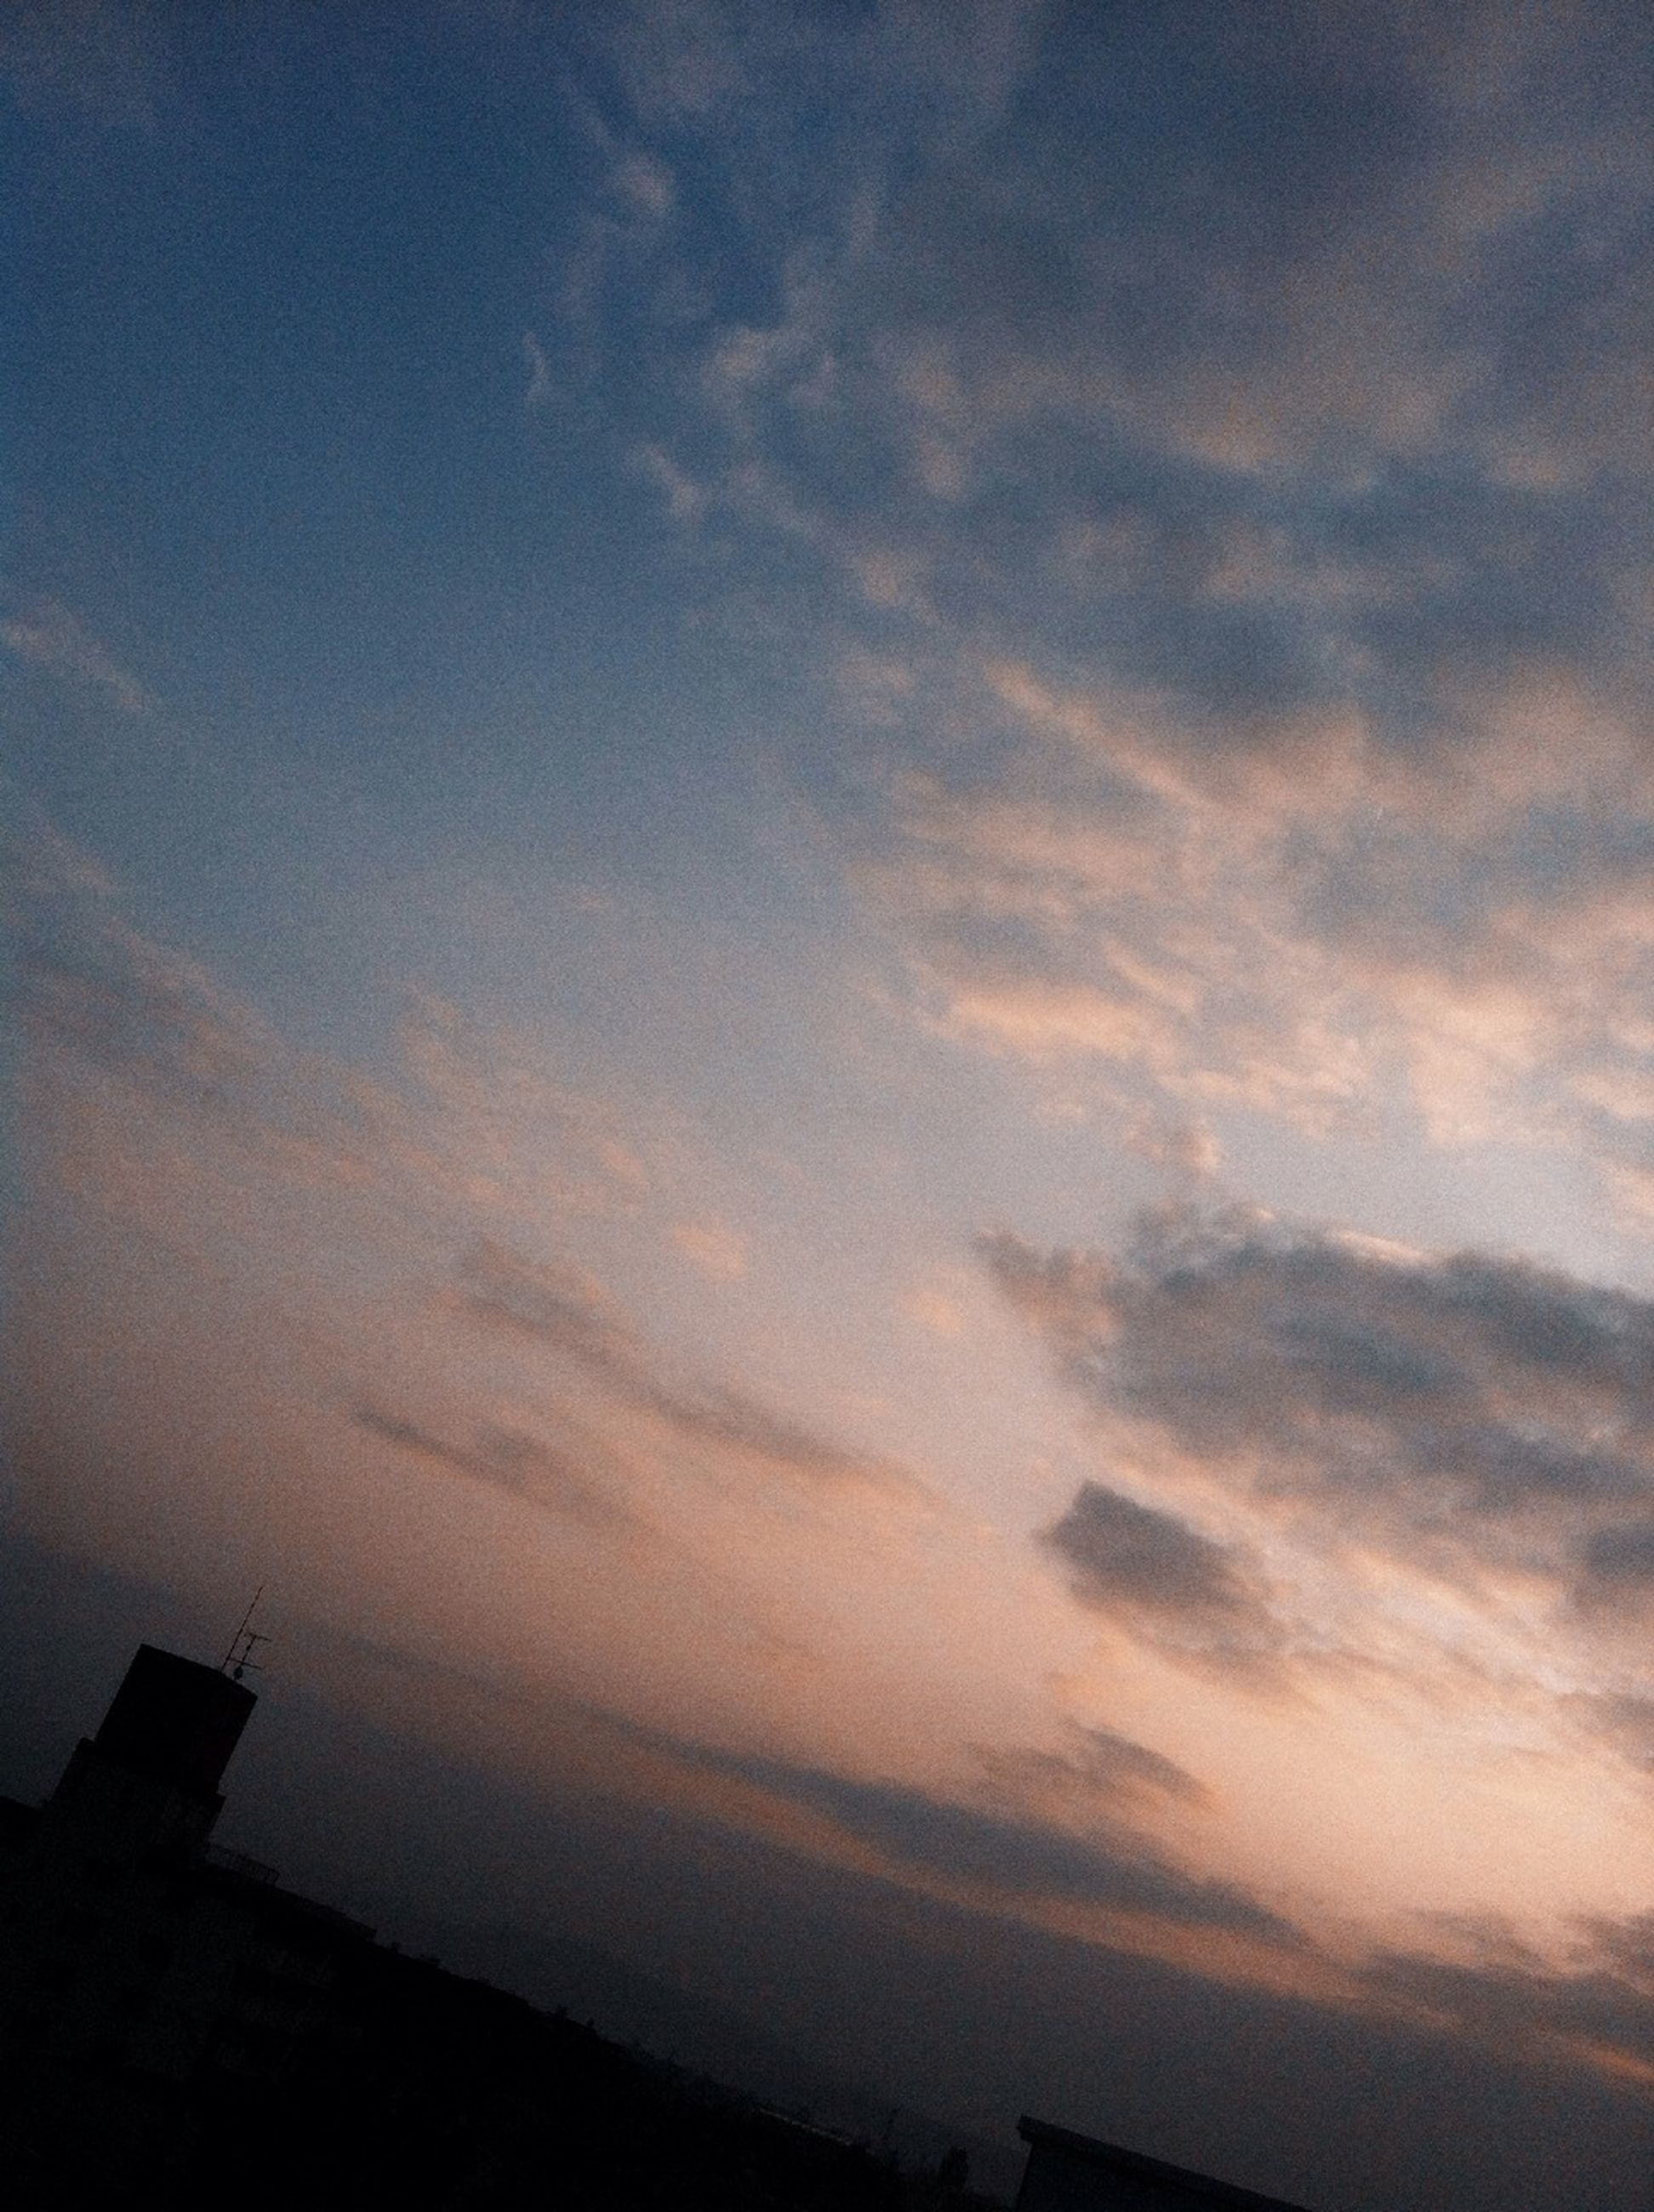 building exterior, architecture, sky, built structure, sunset, cloud - sky, silhouette, low angle view, cloudy, cloud, city, building, dusk, outdoors, beauty in nature, nature, scenics, no people, orange color, high section